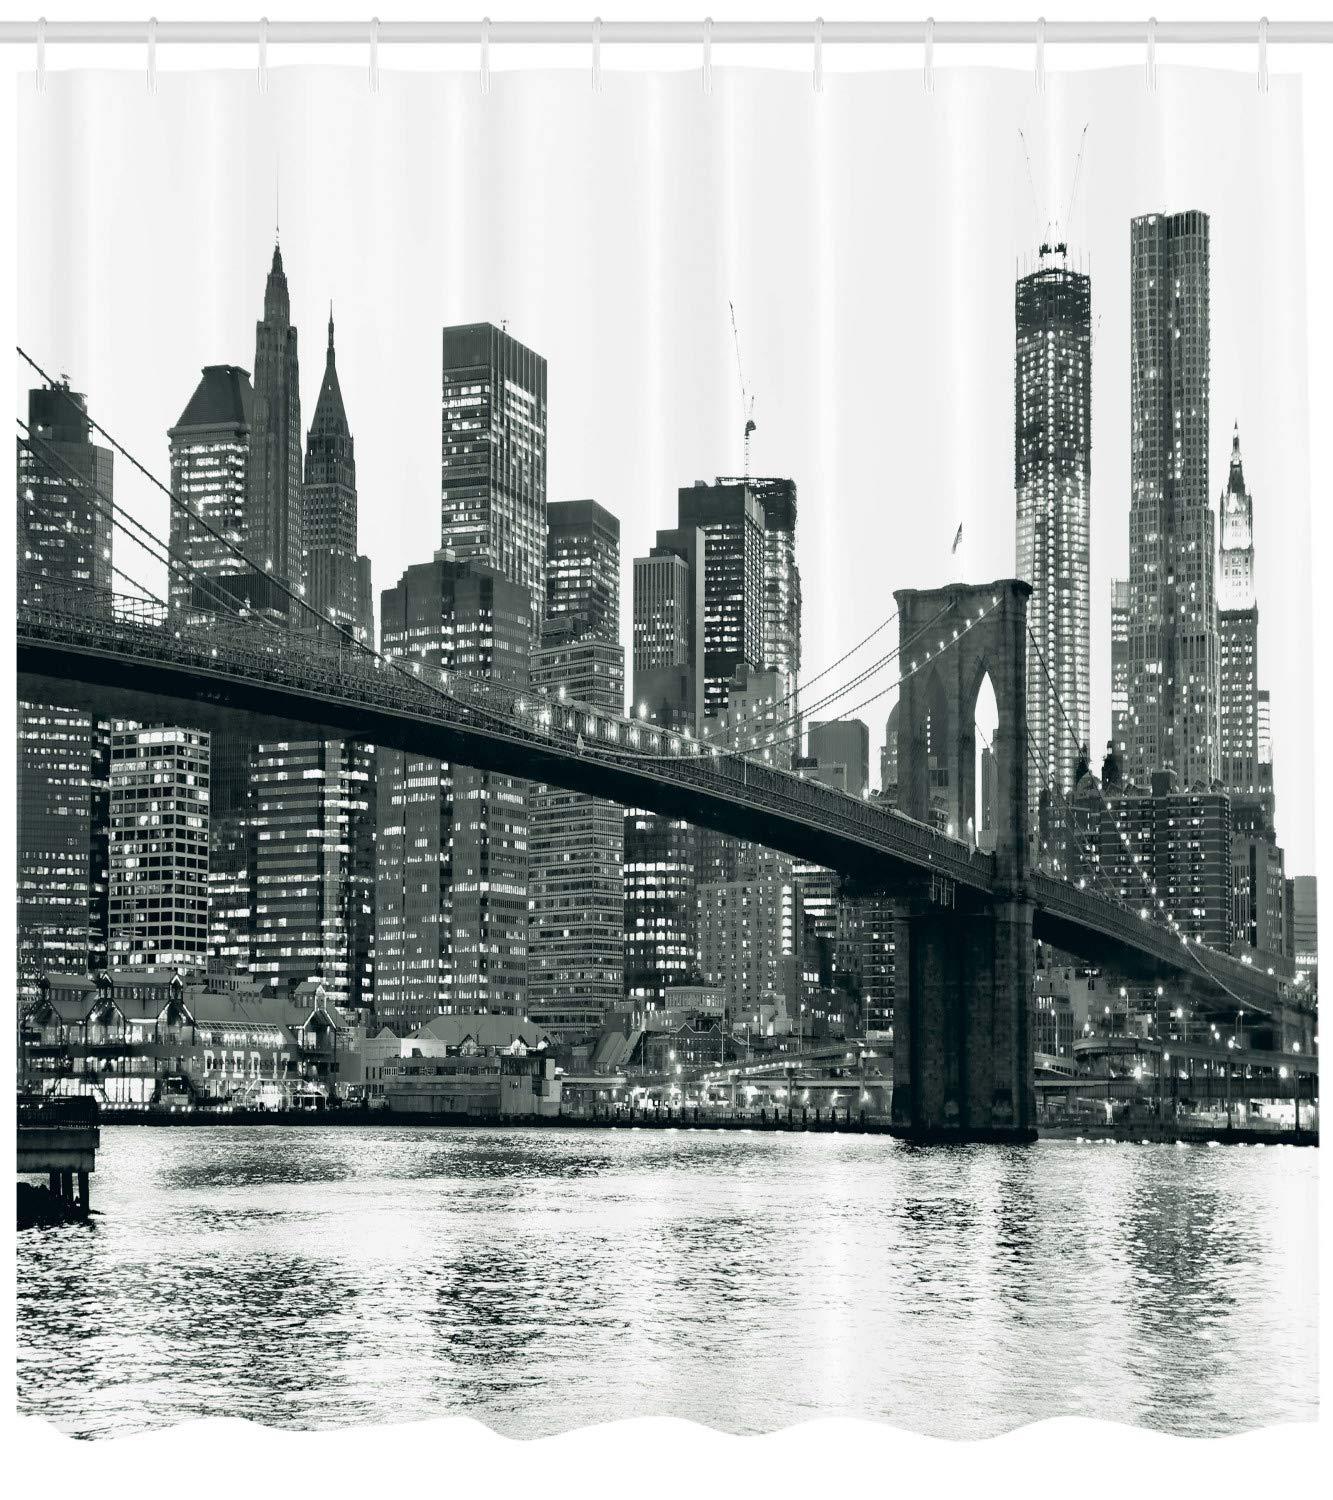 Ambesonne Modern Shower Curtain, Brooklyn Bridge Sunset with Manhattan American New York City Famous Town Image, Fabric Bathroom Decor Set with Hooks, 75 Inches Long, Black and White